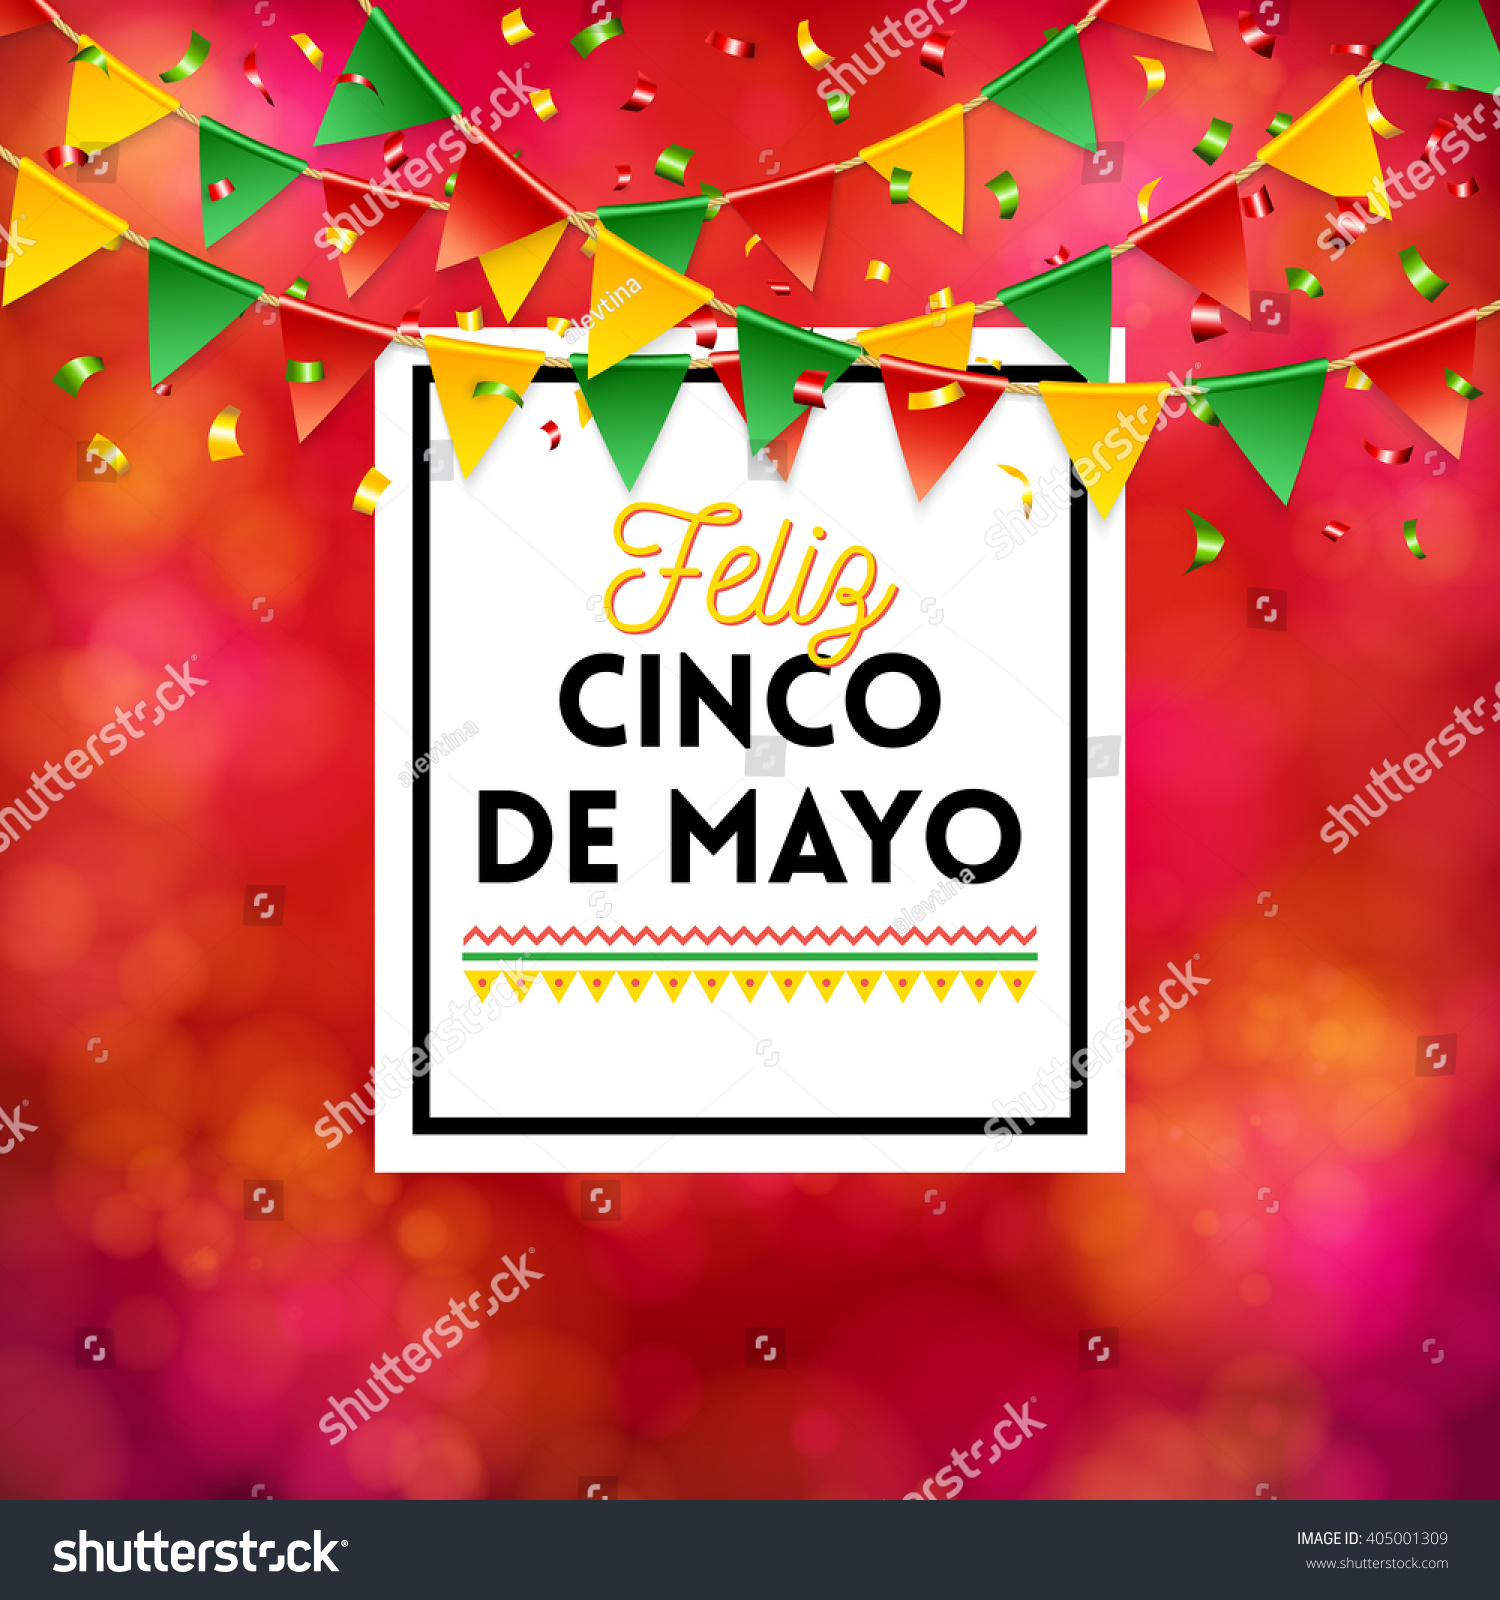 Vector bunting flags lovely celebration card with colorful paper - Bright Red Poster Elements For Cinco De Mayo Celebration Over Obscured Spotted Background With Flags